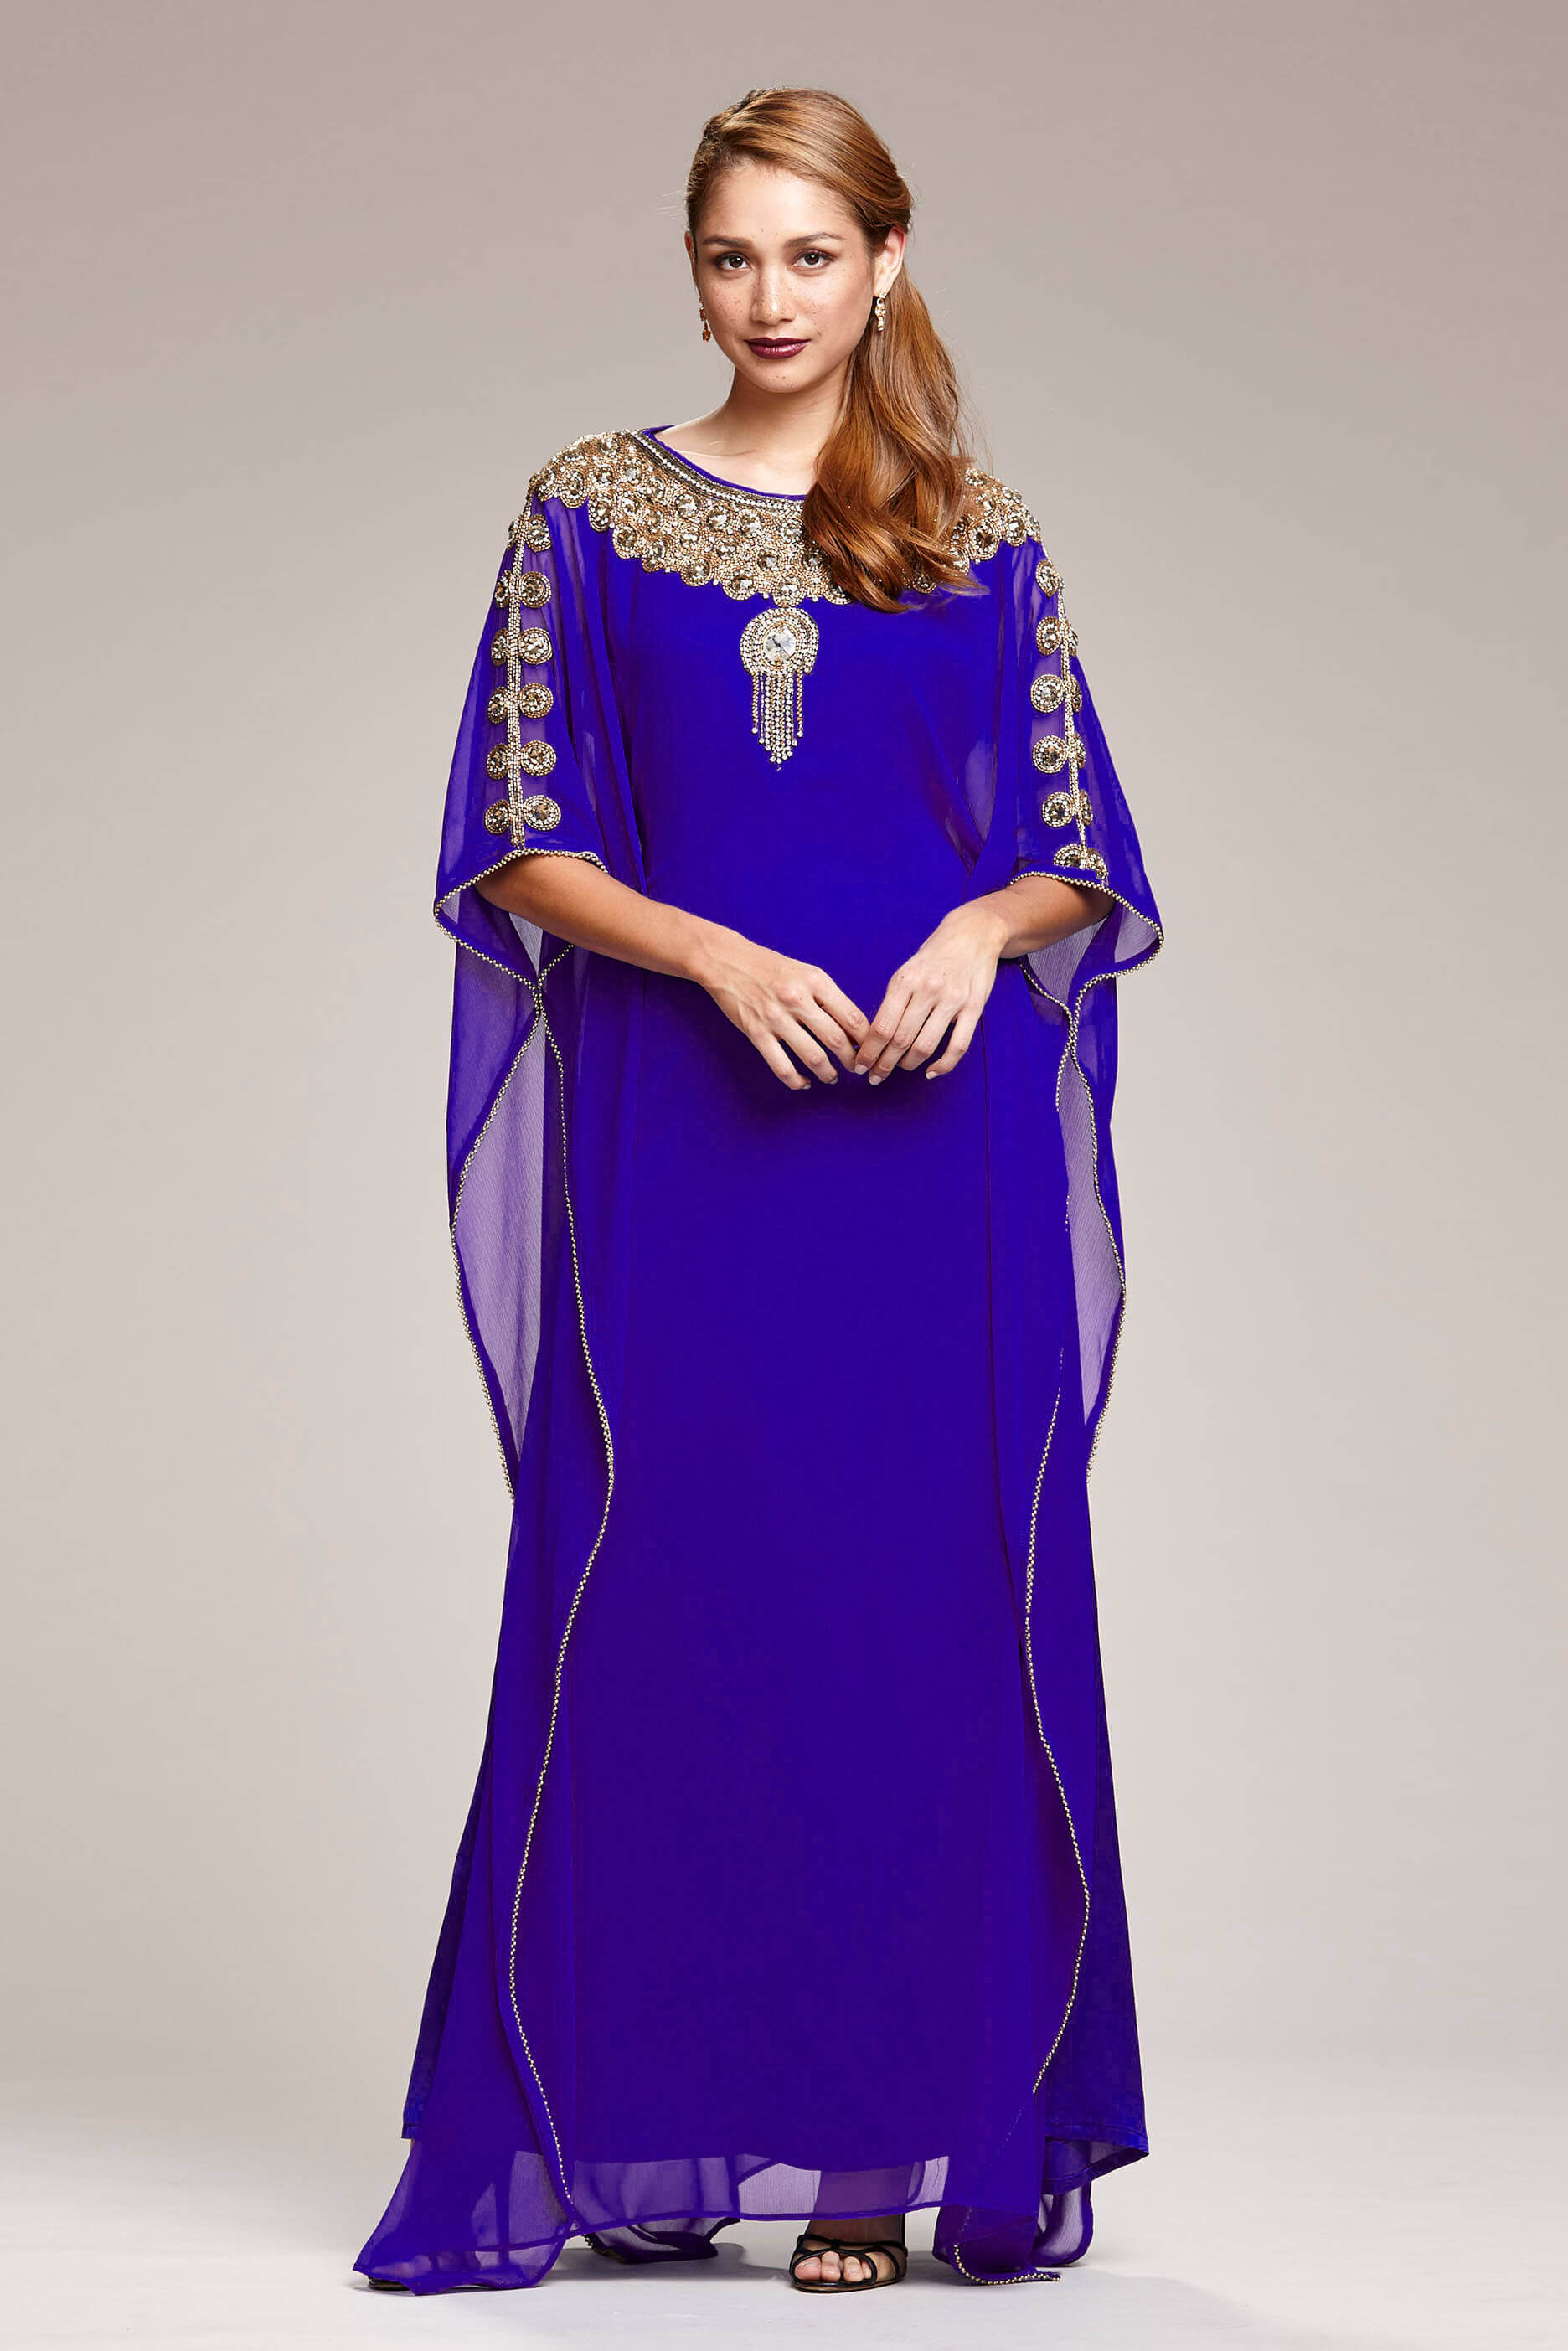 30c7bbca7bd Royal Blue Kaftan Maxi Dress With Gold Embroidery   Crystal Detail Front  View